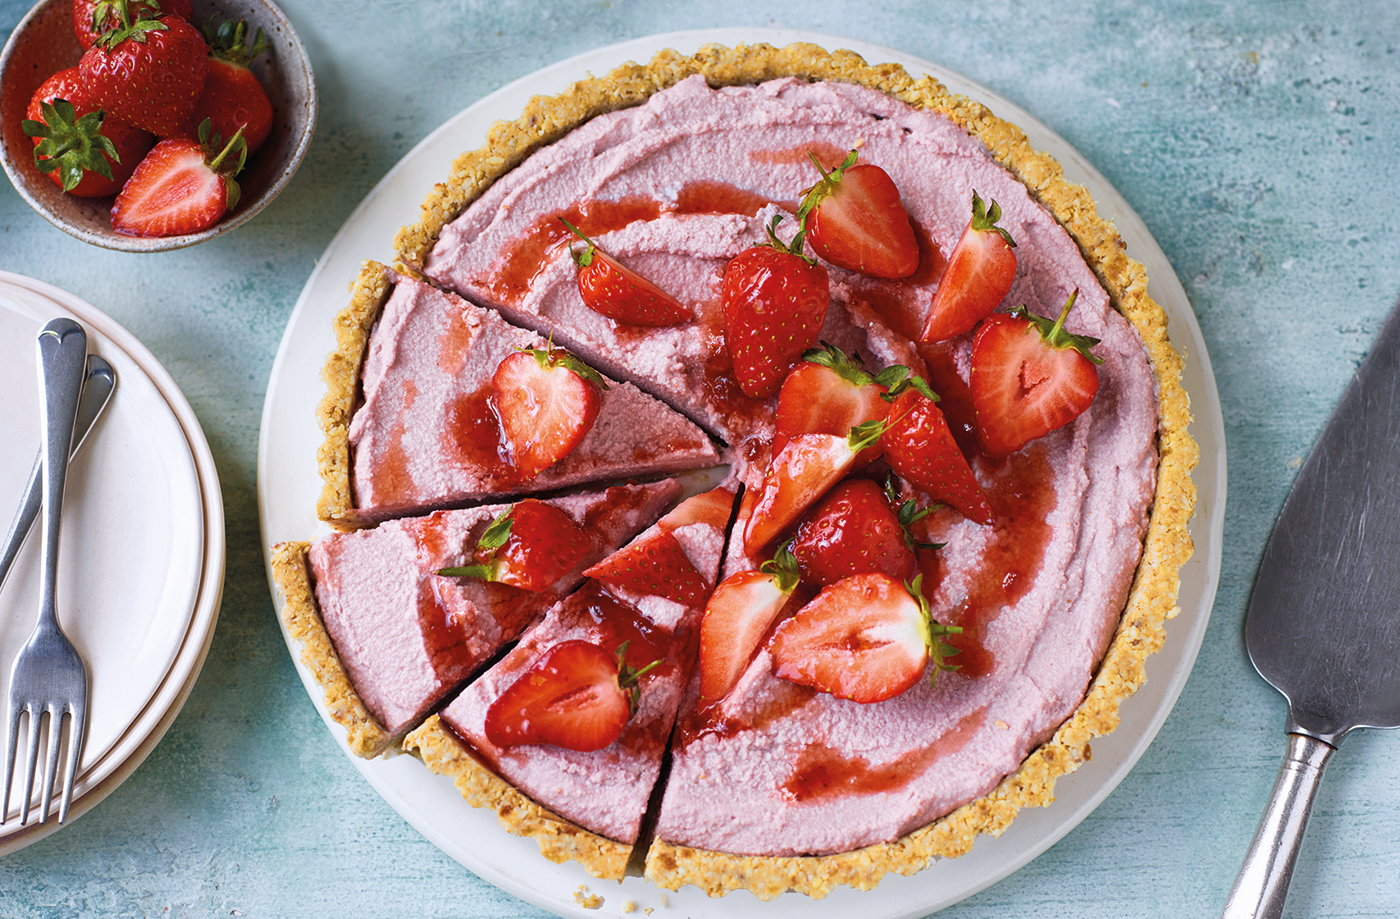 No-bake vegan strawberry tart recipe